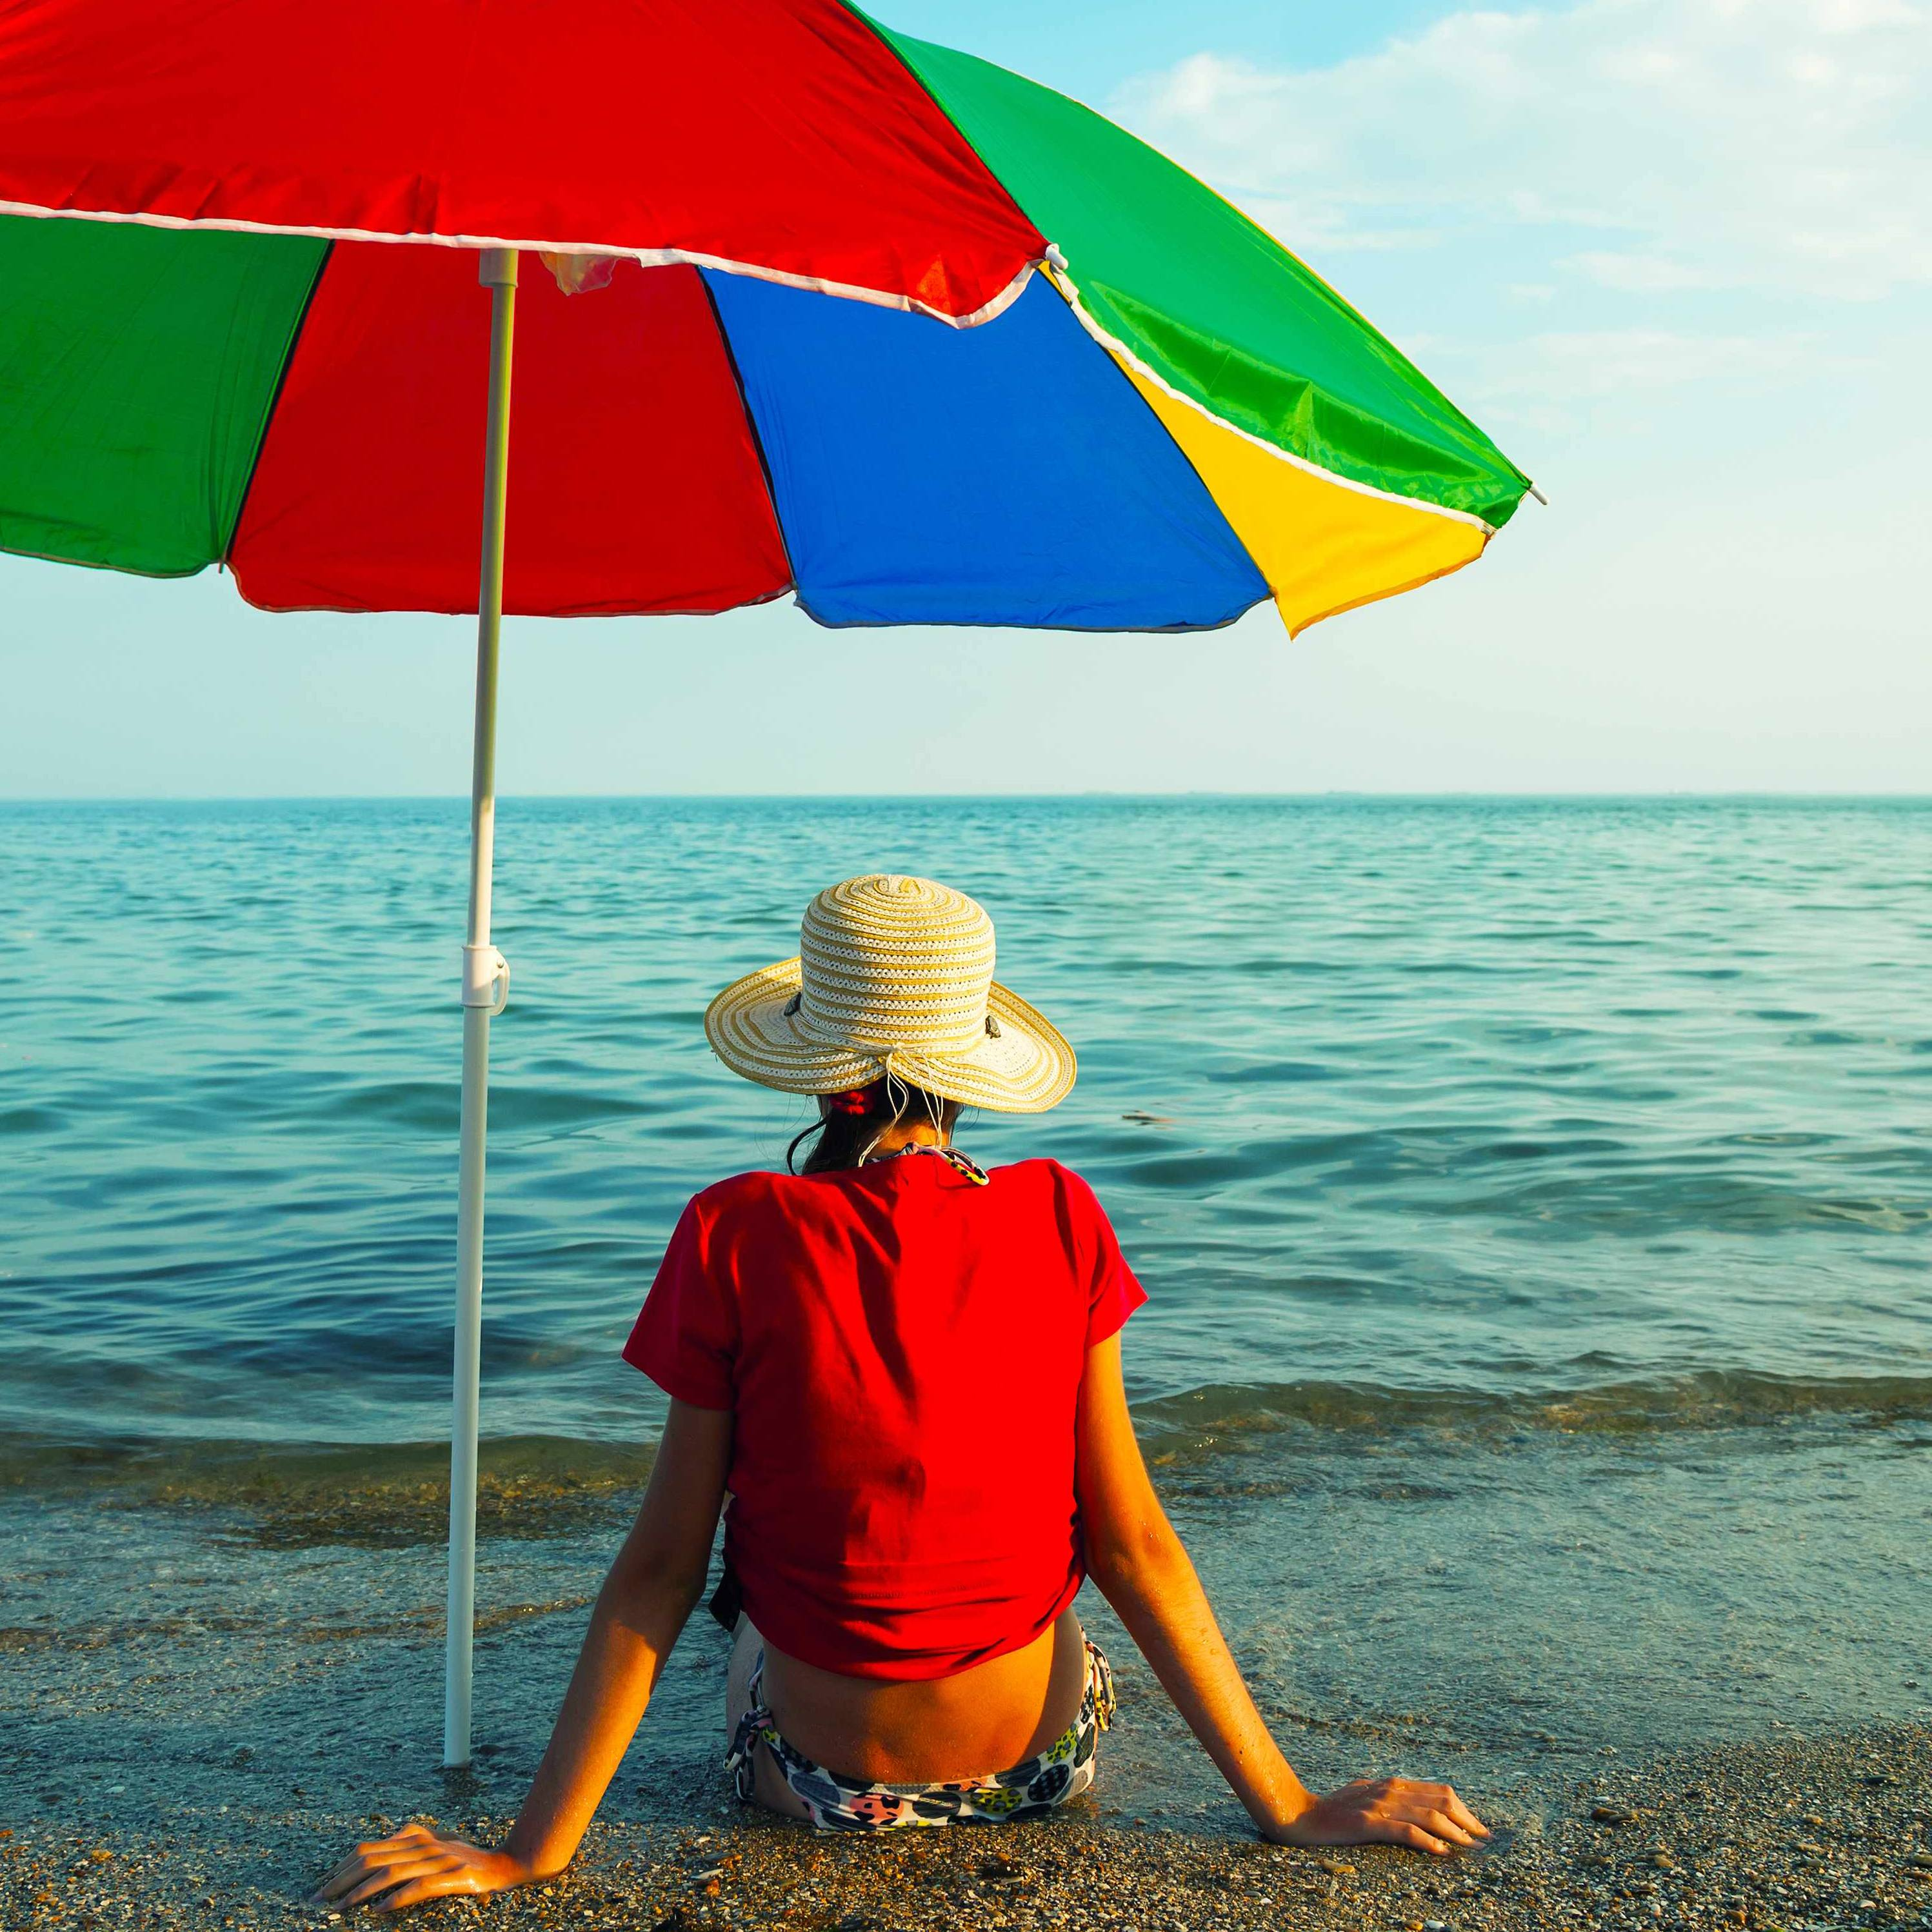 A young teen girl sitting in the sun under an umbrella on the beach with a hat on her head.